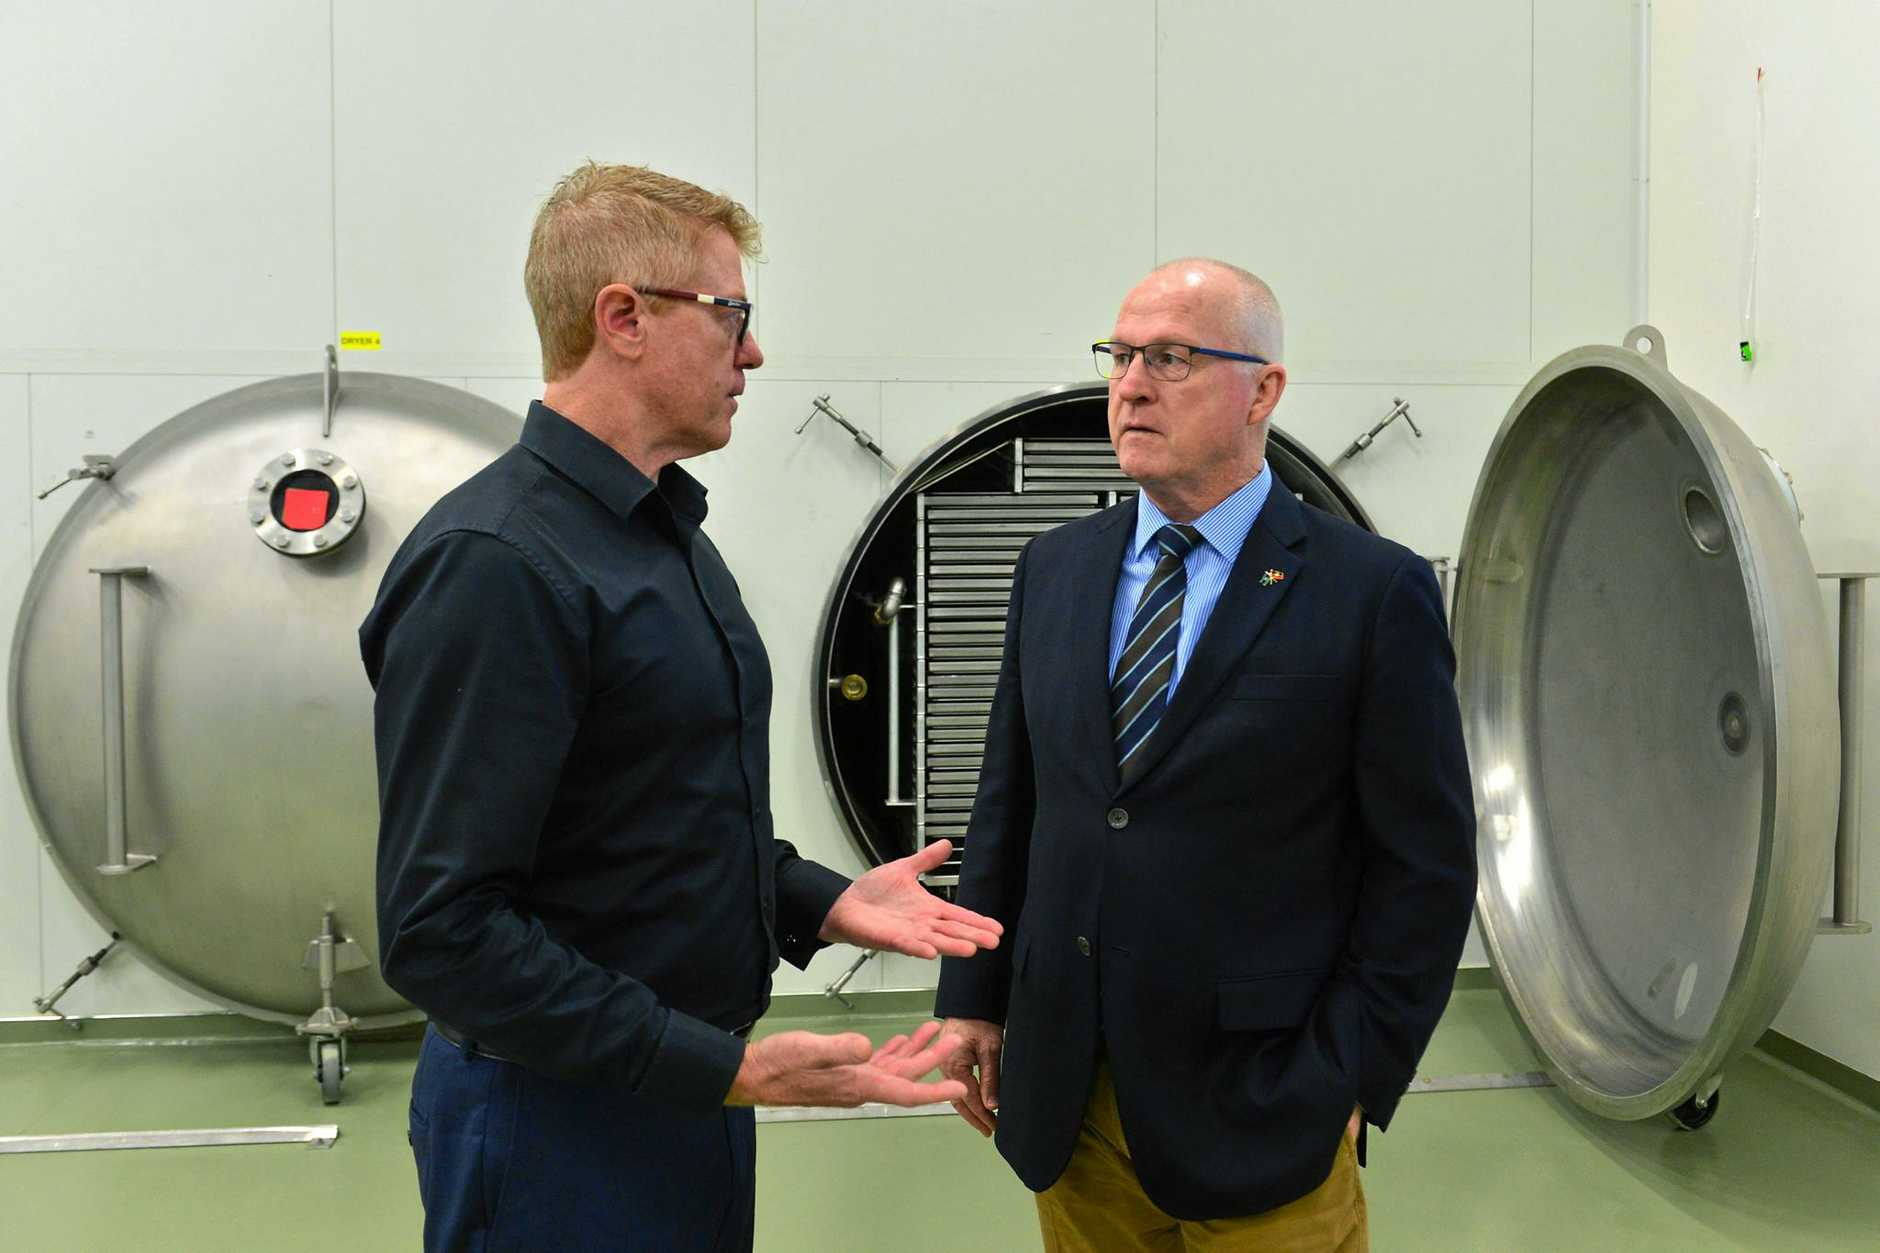 Freeze Dry Industries CEO and founder Michael Buckley chats with Sunshine Coast Mayor Mark Jamieson about the facility.